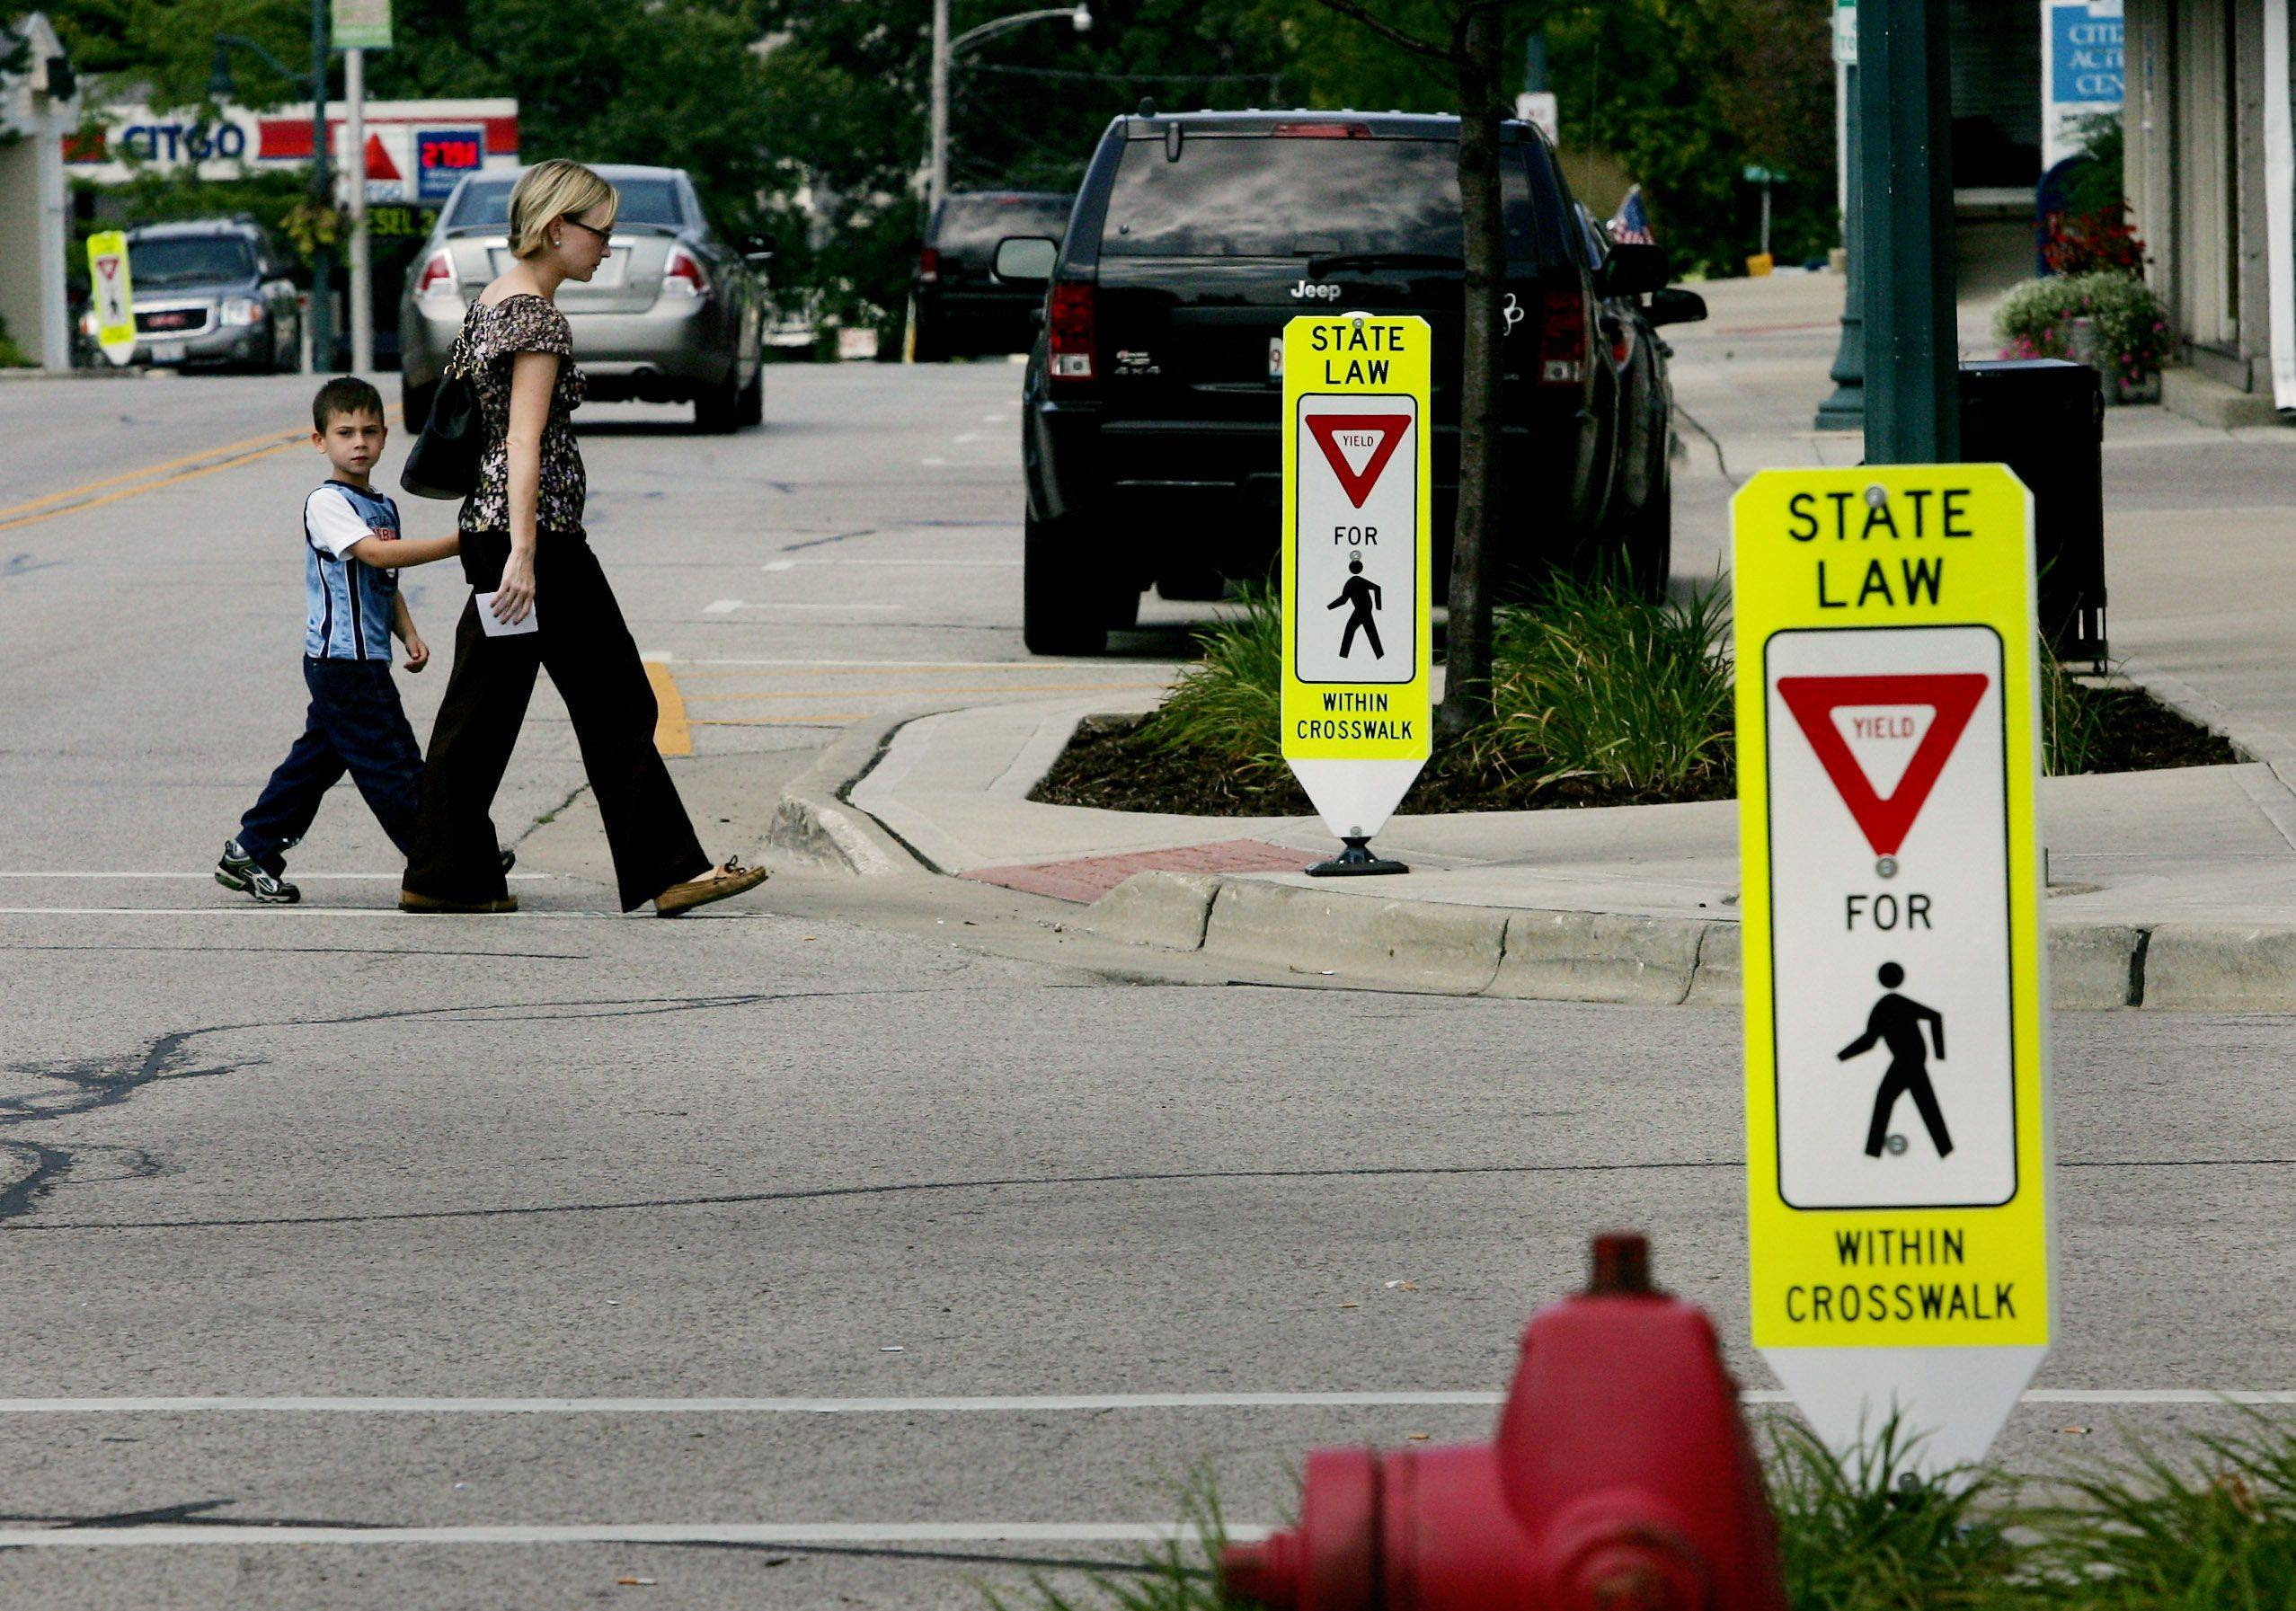 Gilbert R. Boucher II/gboucher@dailyherald.comEmilie Kaplan and her 5-year-old nephew, Zakai, of Island Lake, are near crosswalk signs along Main Street in Wauconda. Some towns already have changed the yield image to a stop, reflecting Illinois' new crosswalk law.